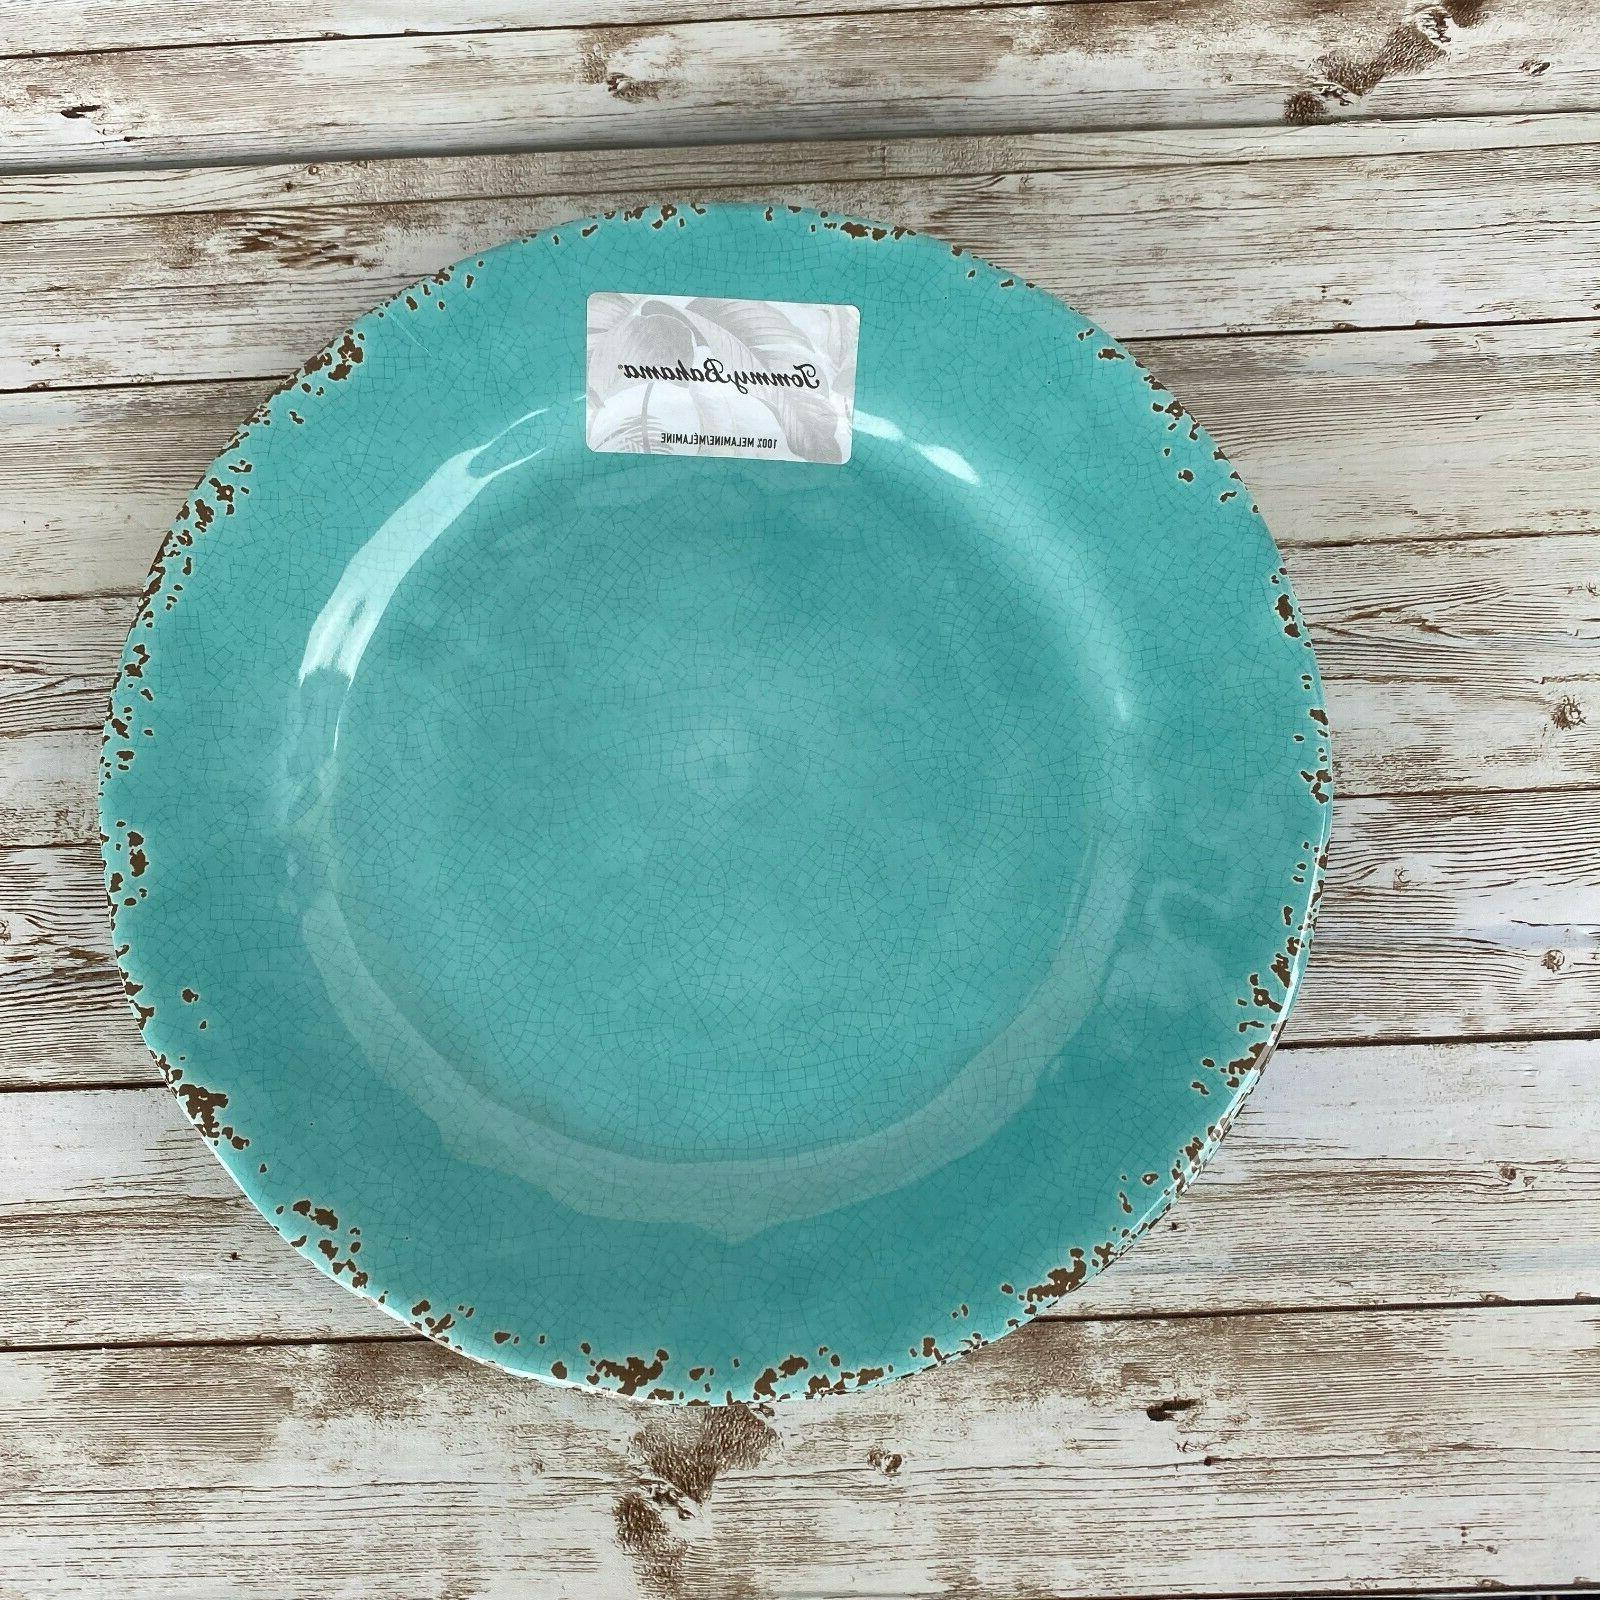 New Tommy Melamine Aqua Blue Crackle Plates of 2